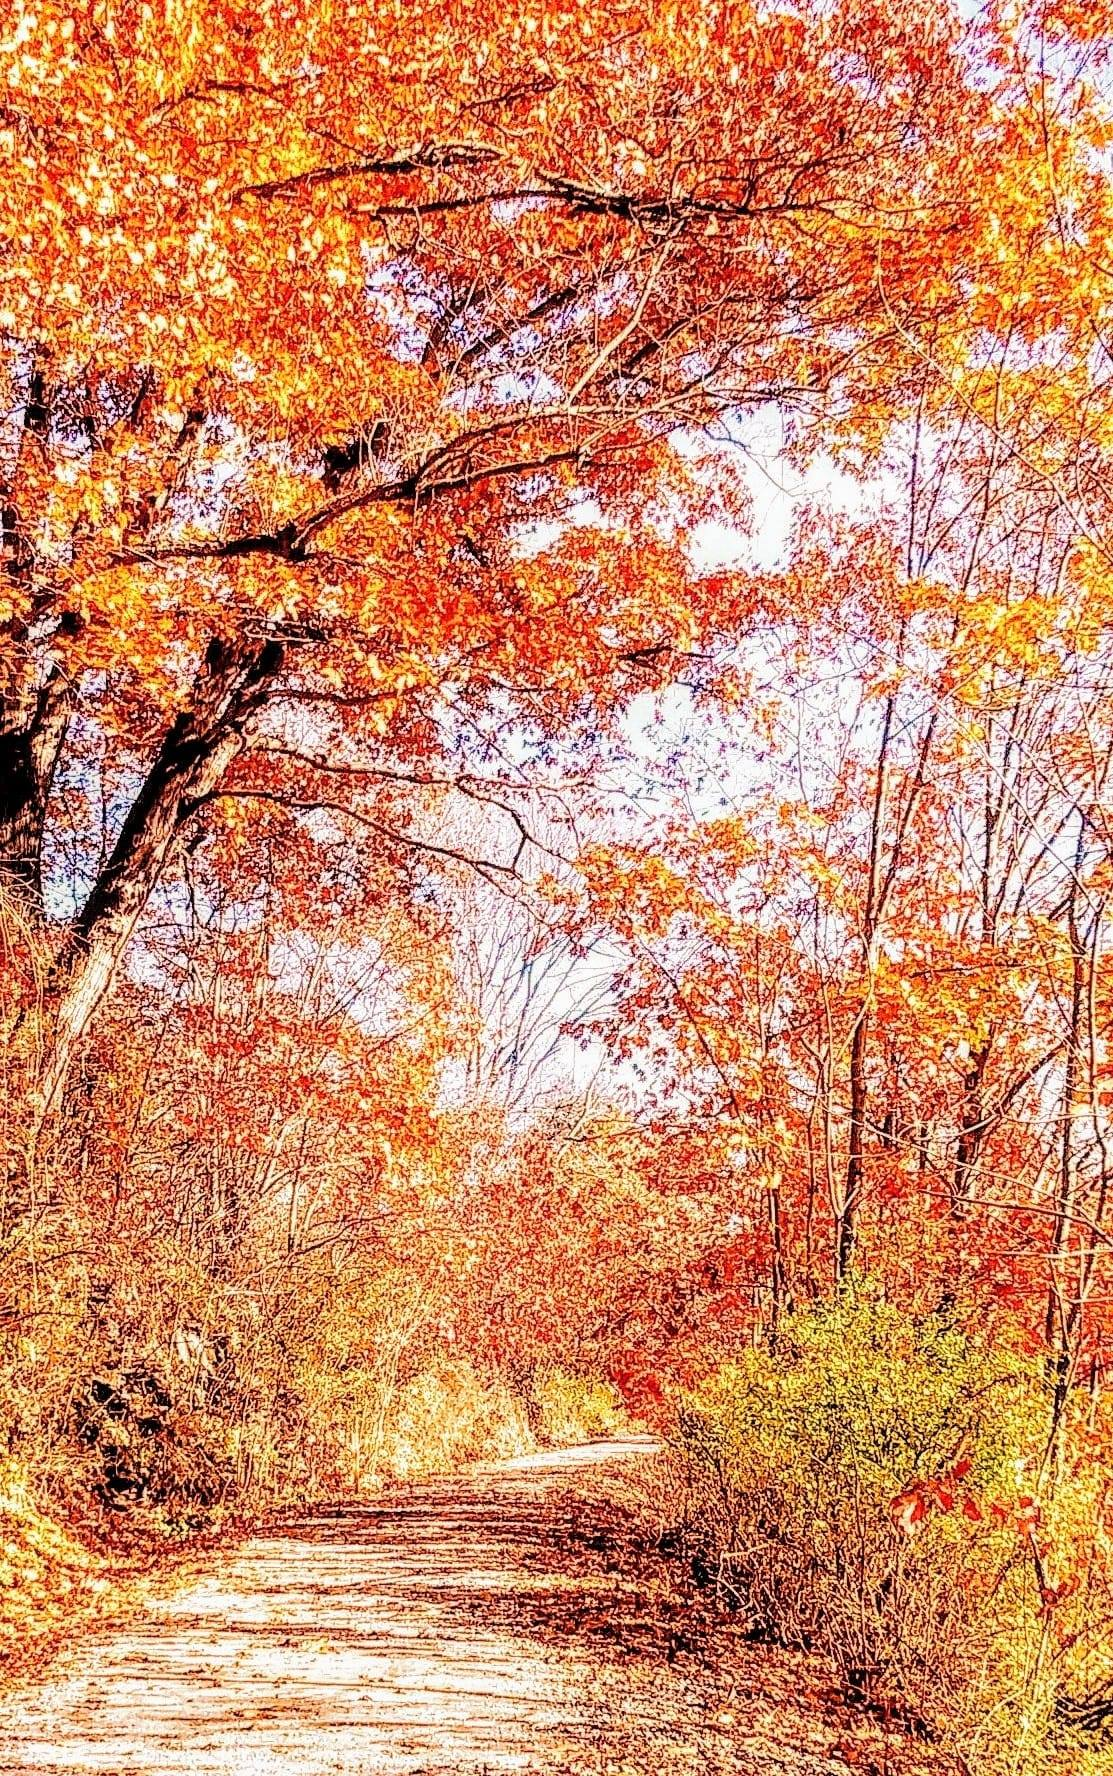 Redbank Valley Trail near New Bethlehem. Submitted by David Proper.